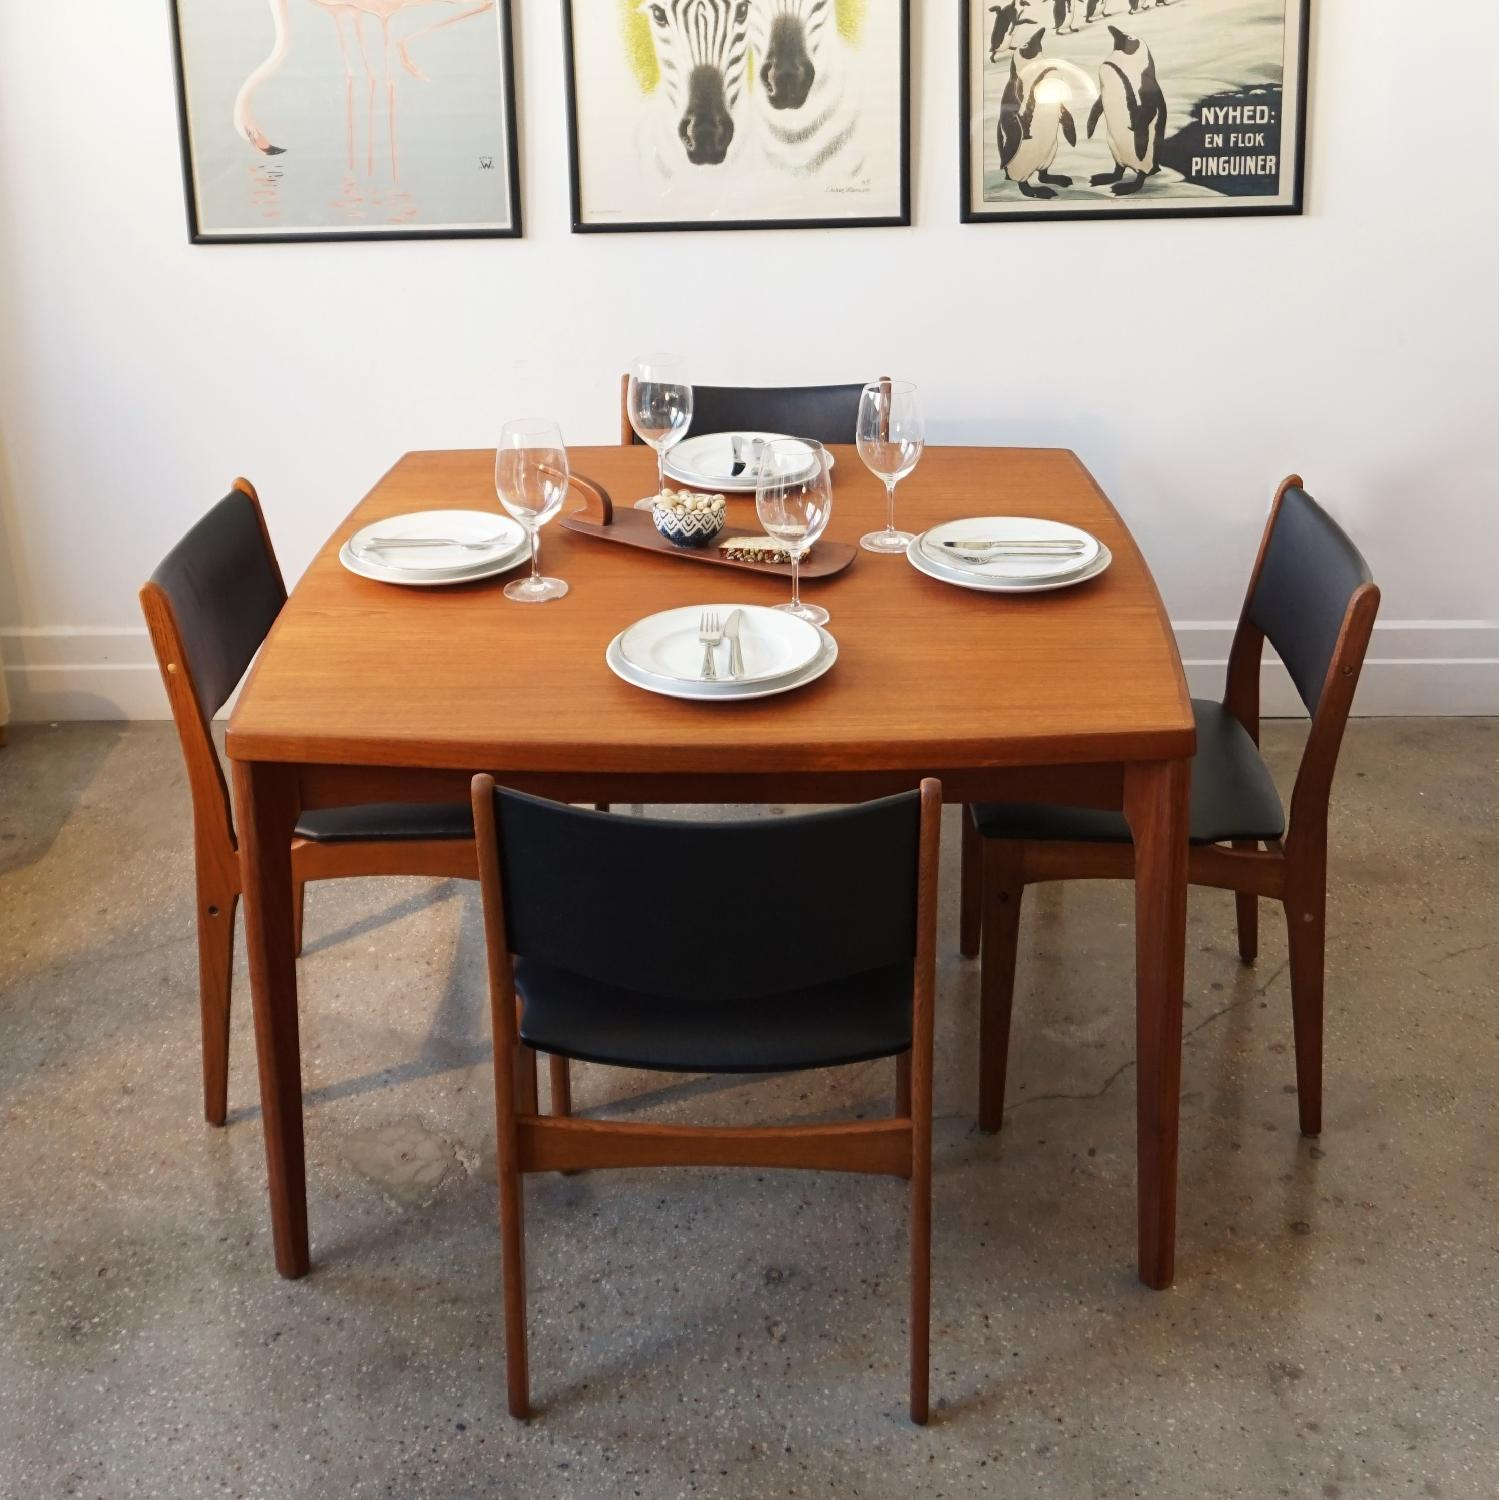 Henning Kjrnulf Extendable Dining Table - image-3